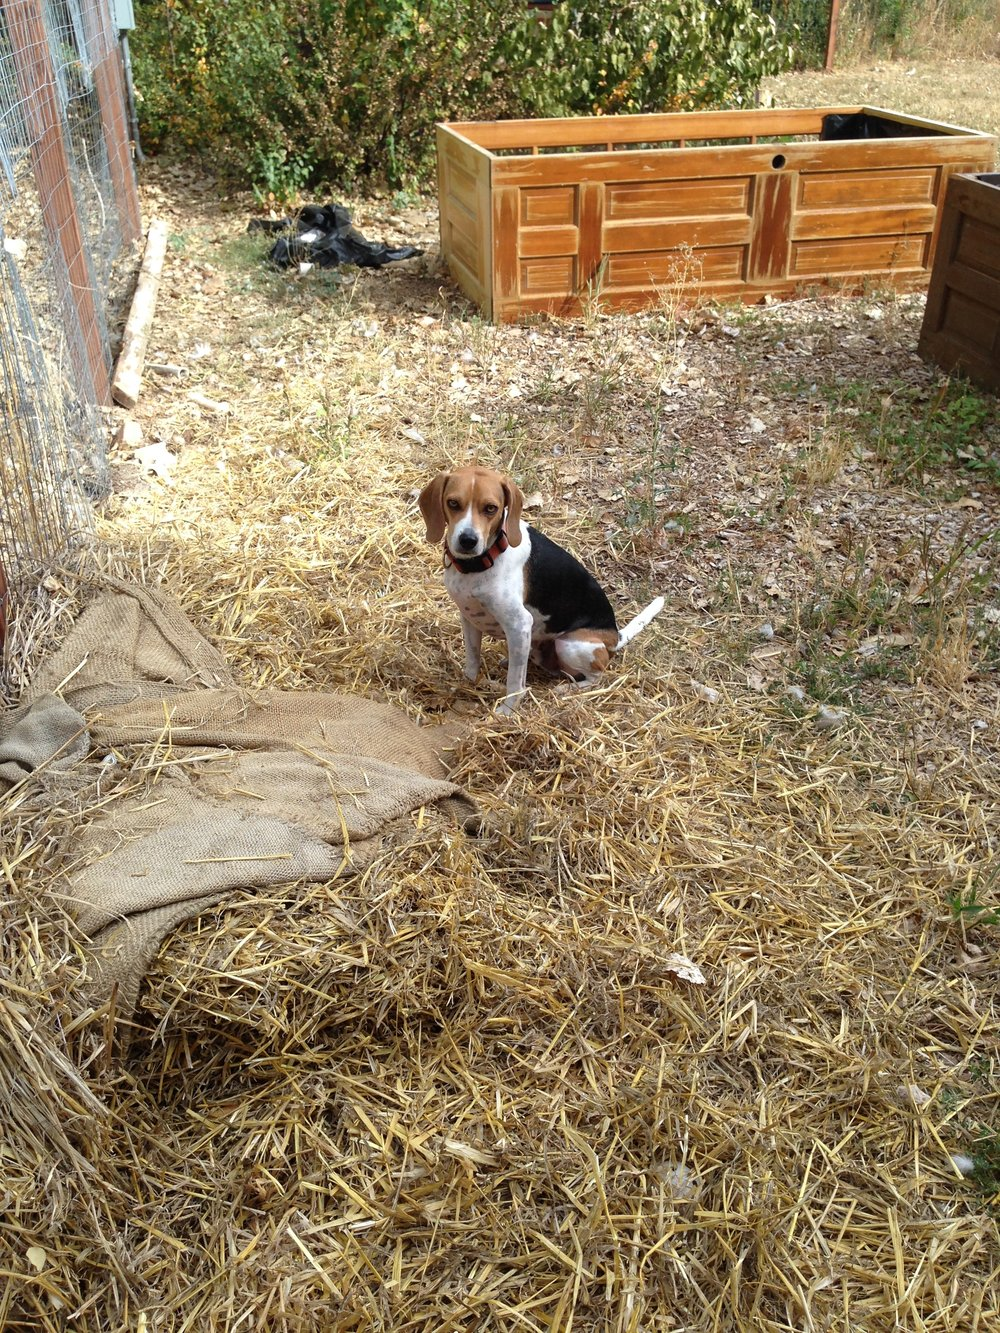 Grits, our rescue beags supervising the groundwork 3 summers ago